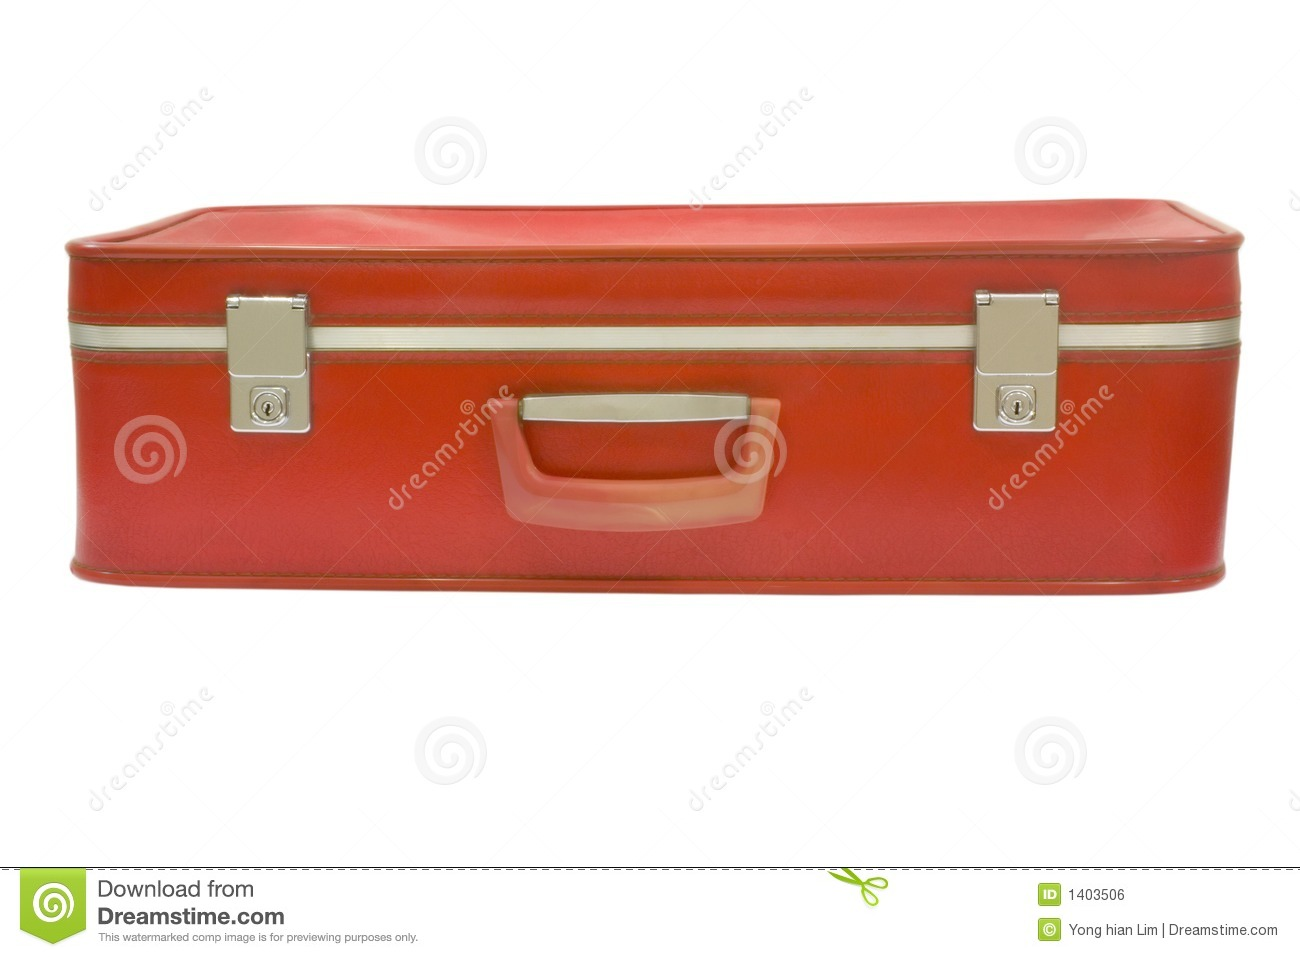 Vieille valise rouge